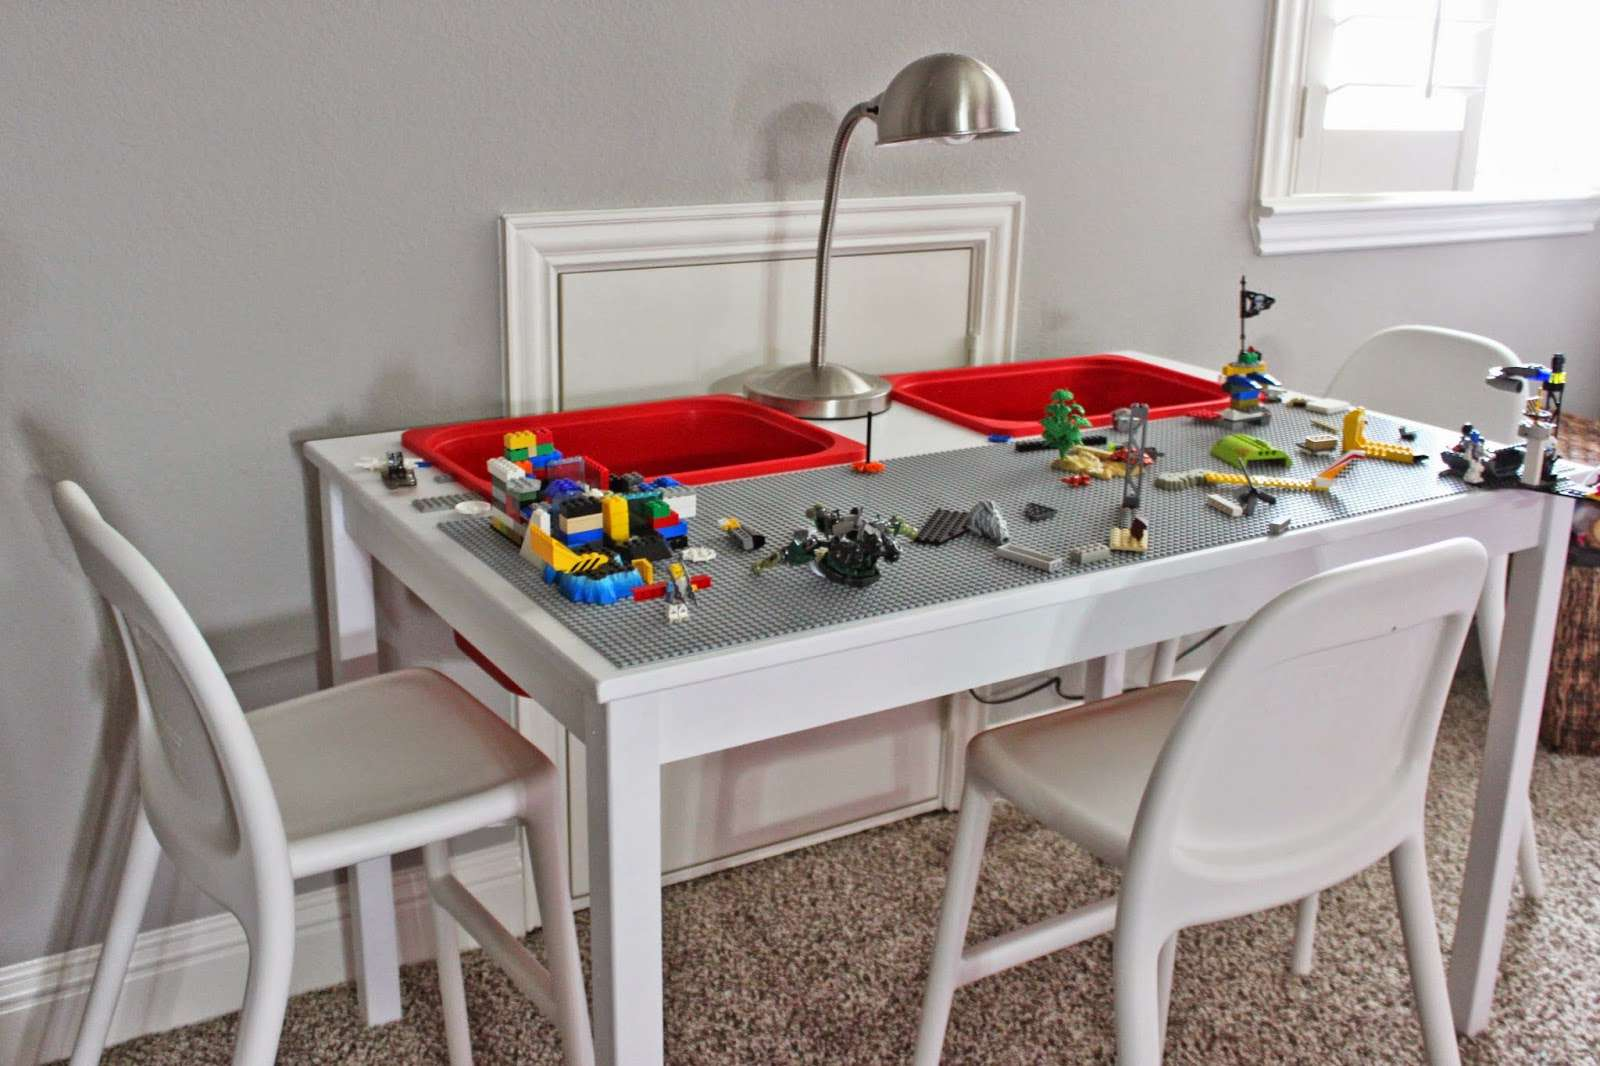 A Lego table with chairs and bins